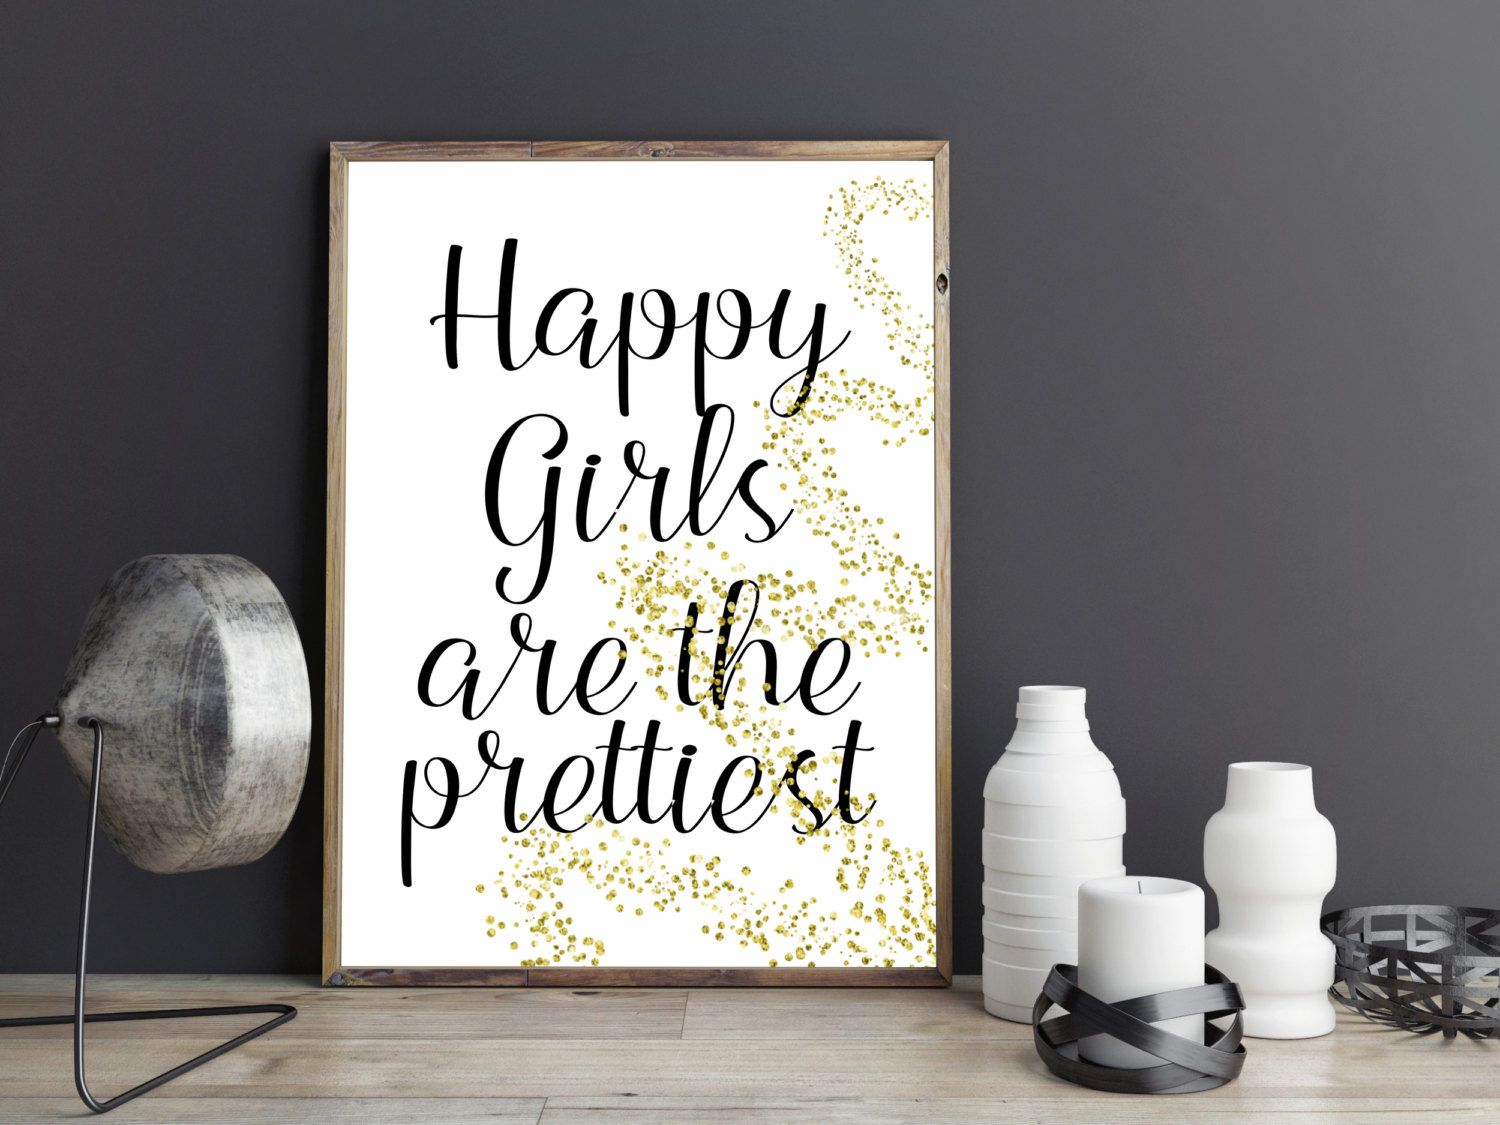 Bathroom wall art printables - Bathroom Printable Bathroom Wall Decor Girly Bathroom Art Printable